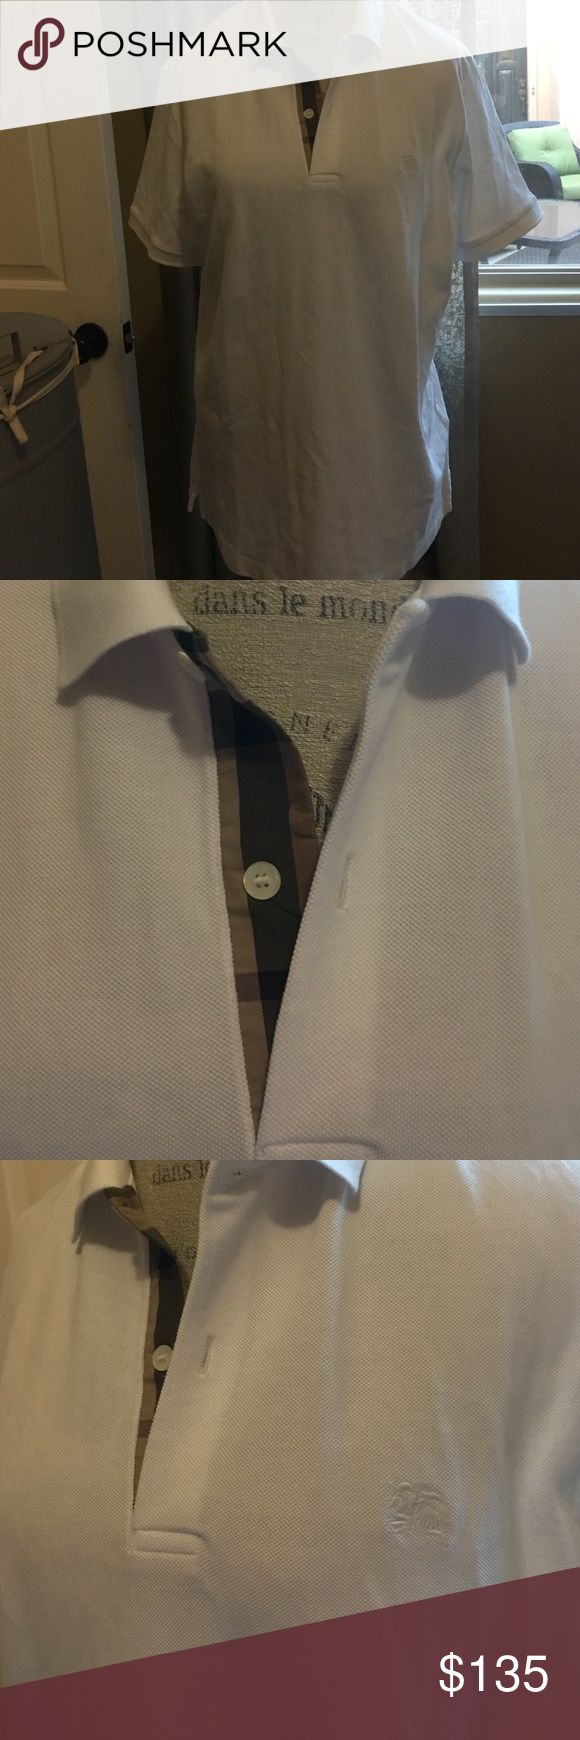 Men's Burberry shirt White Berberry shirt for men excellent condition worn two times Burberry Shirts Polos